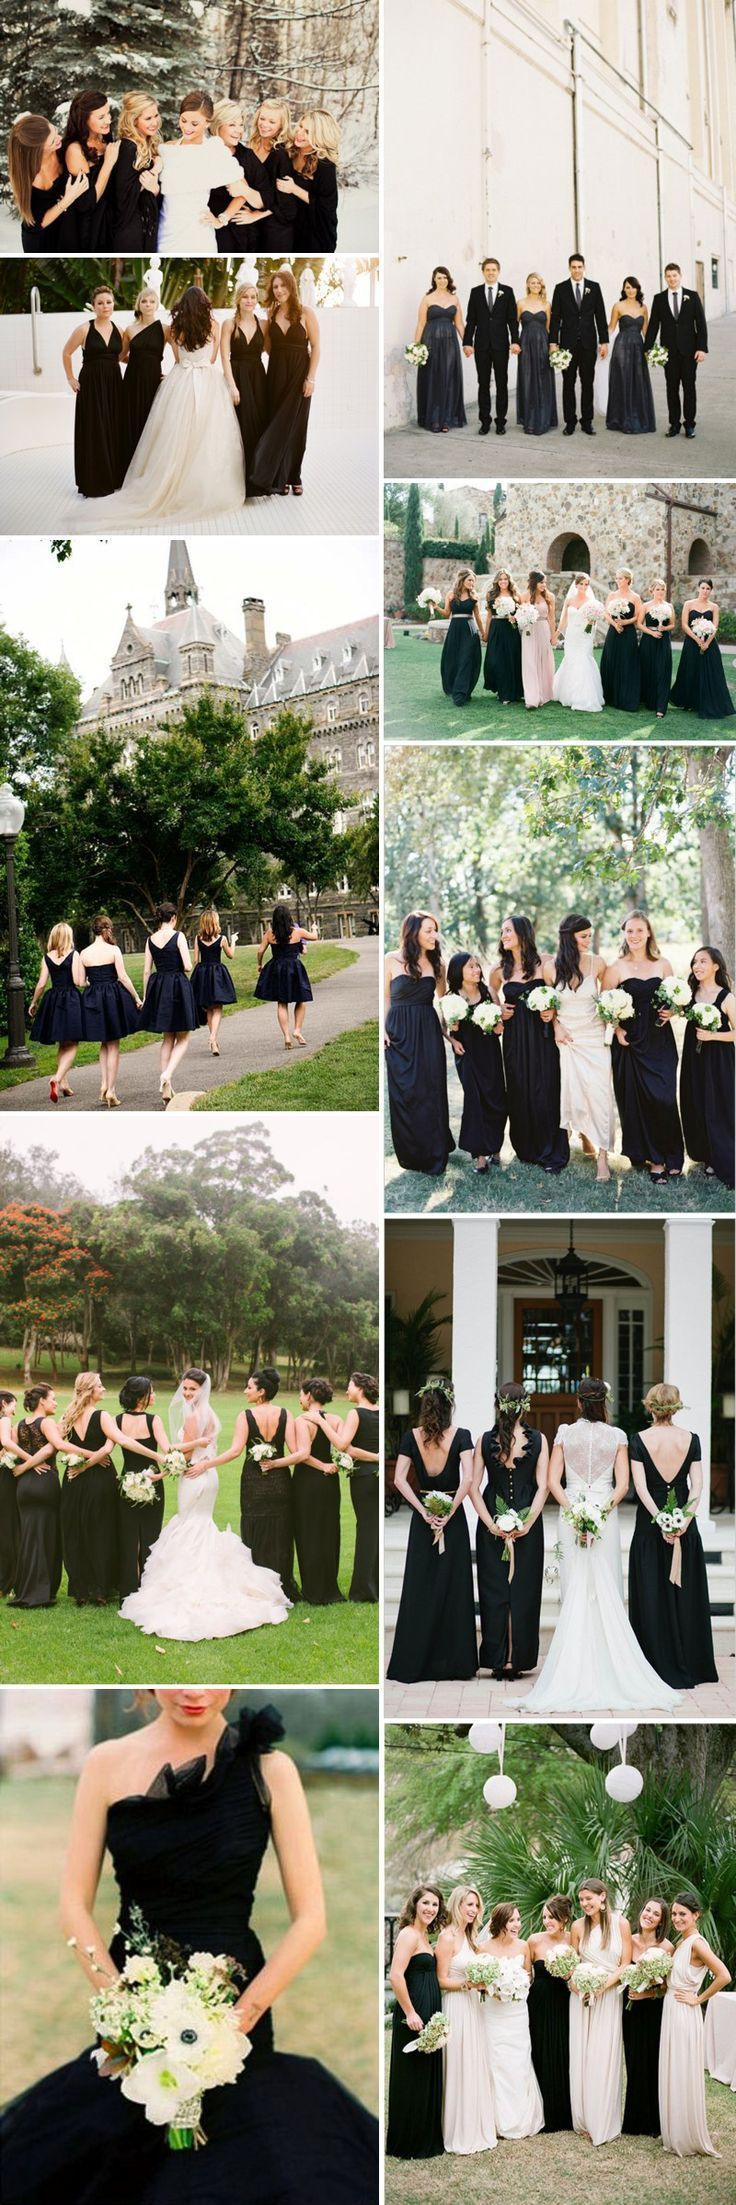 Best 25 black bridesmaid dresses ideas on pinterest black best 25 black bridesmaid dresses ideas on pinterest black bridesmaid long long black bridesmaid dresses and black bridesmaids ombrellifo Image collections